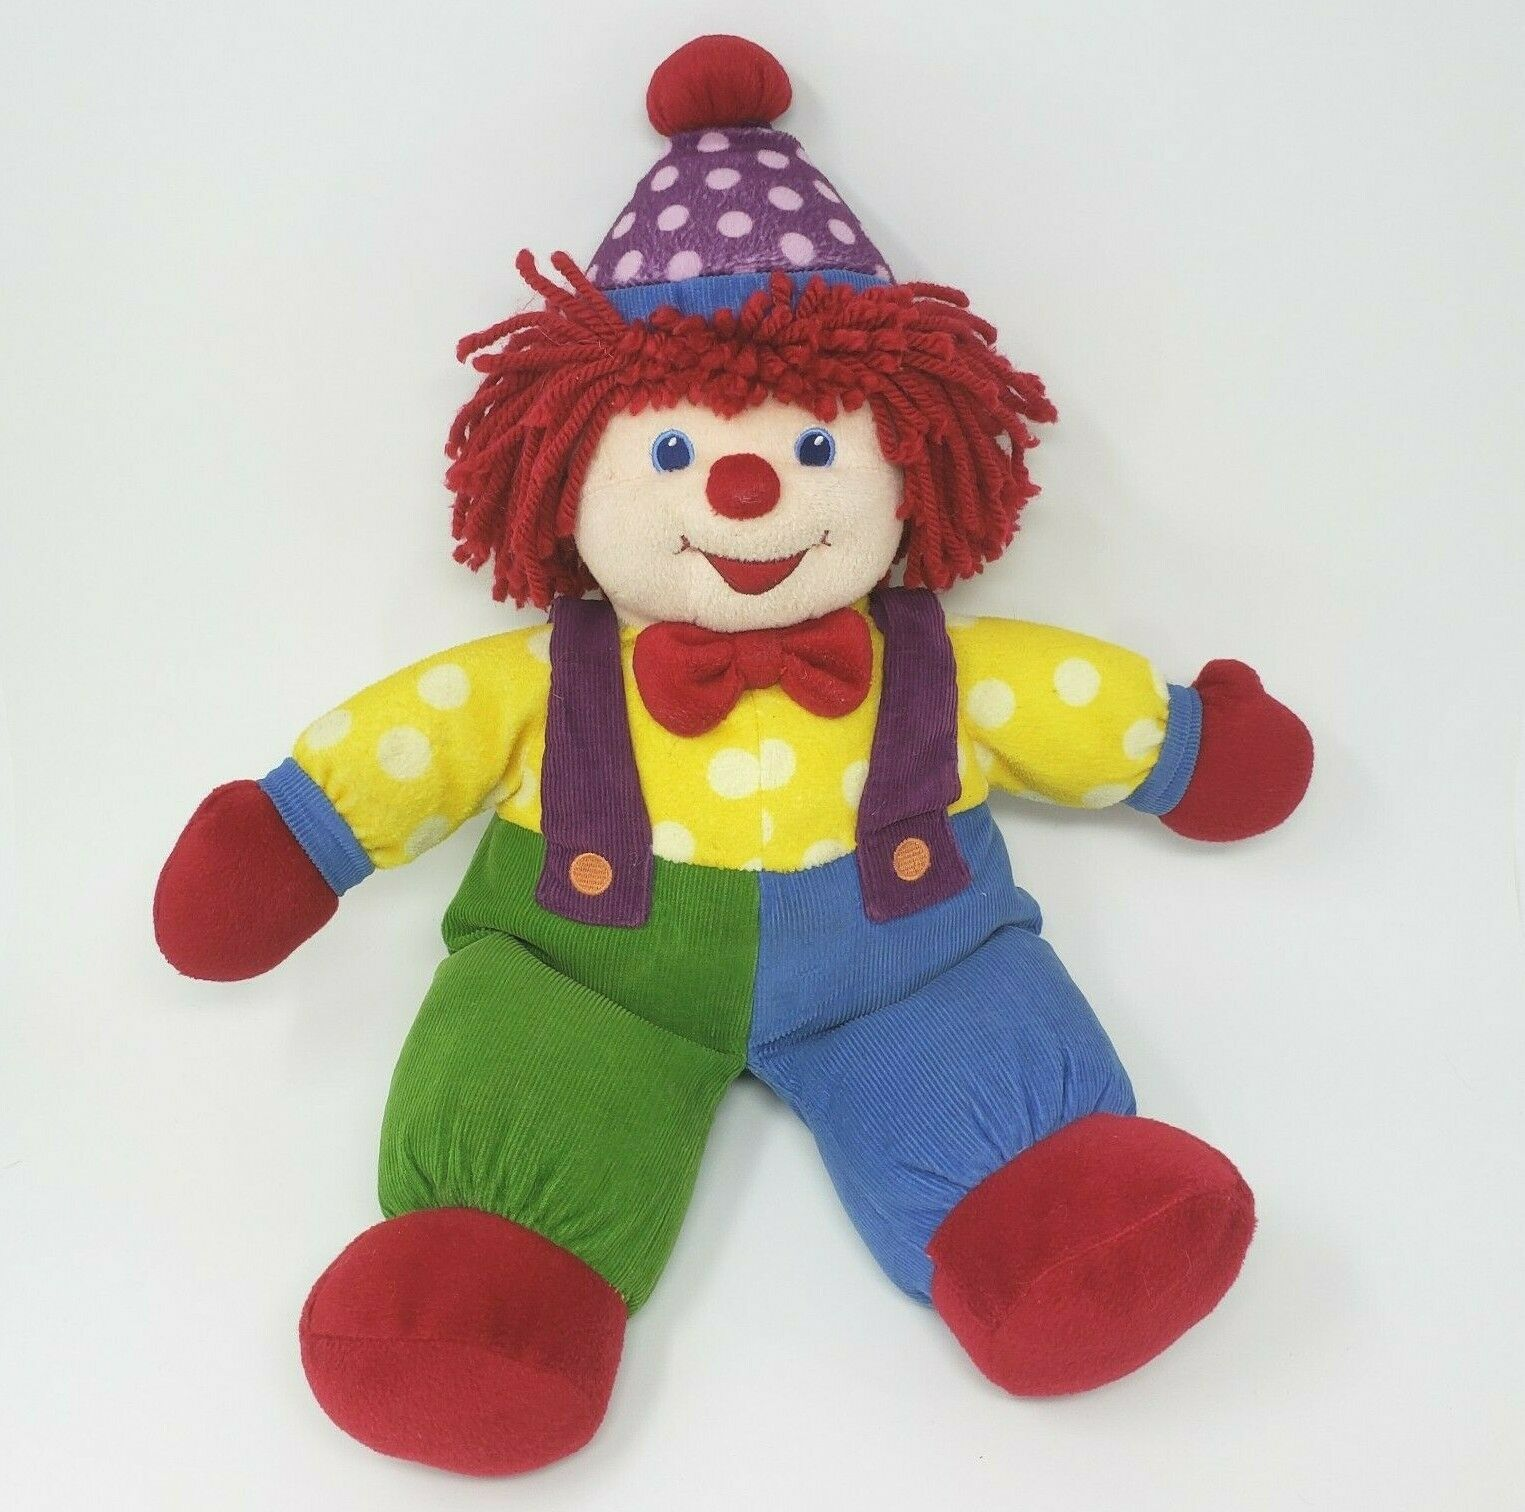 "Primary image for 18"" BIG GYMBOREE GYMBO THE BABY CLOWN DOLL STUFFED ANIMAL PLUSH TOY RED & BLUE"